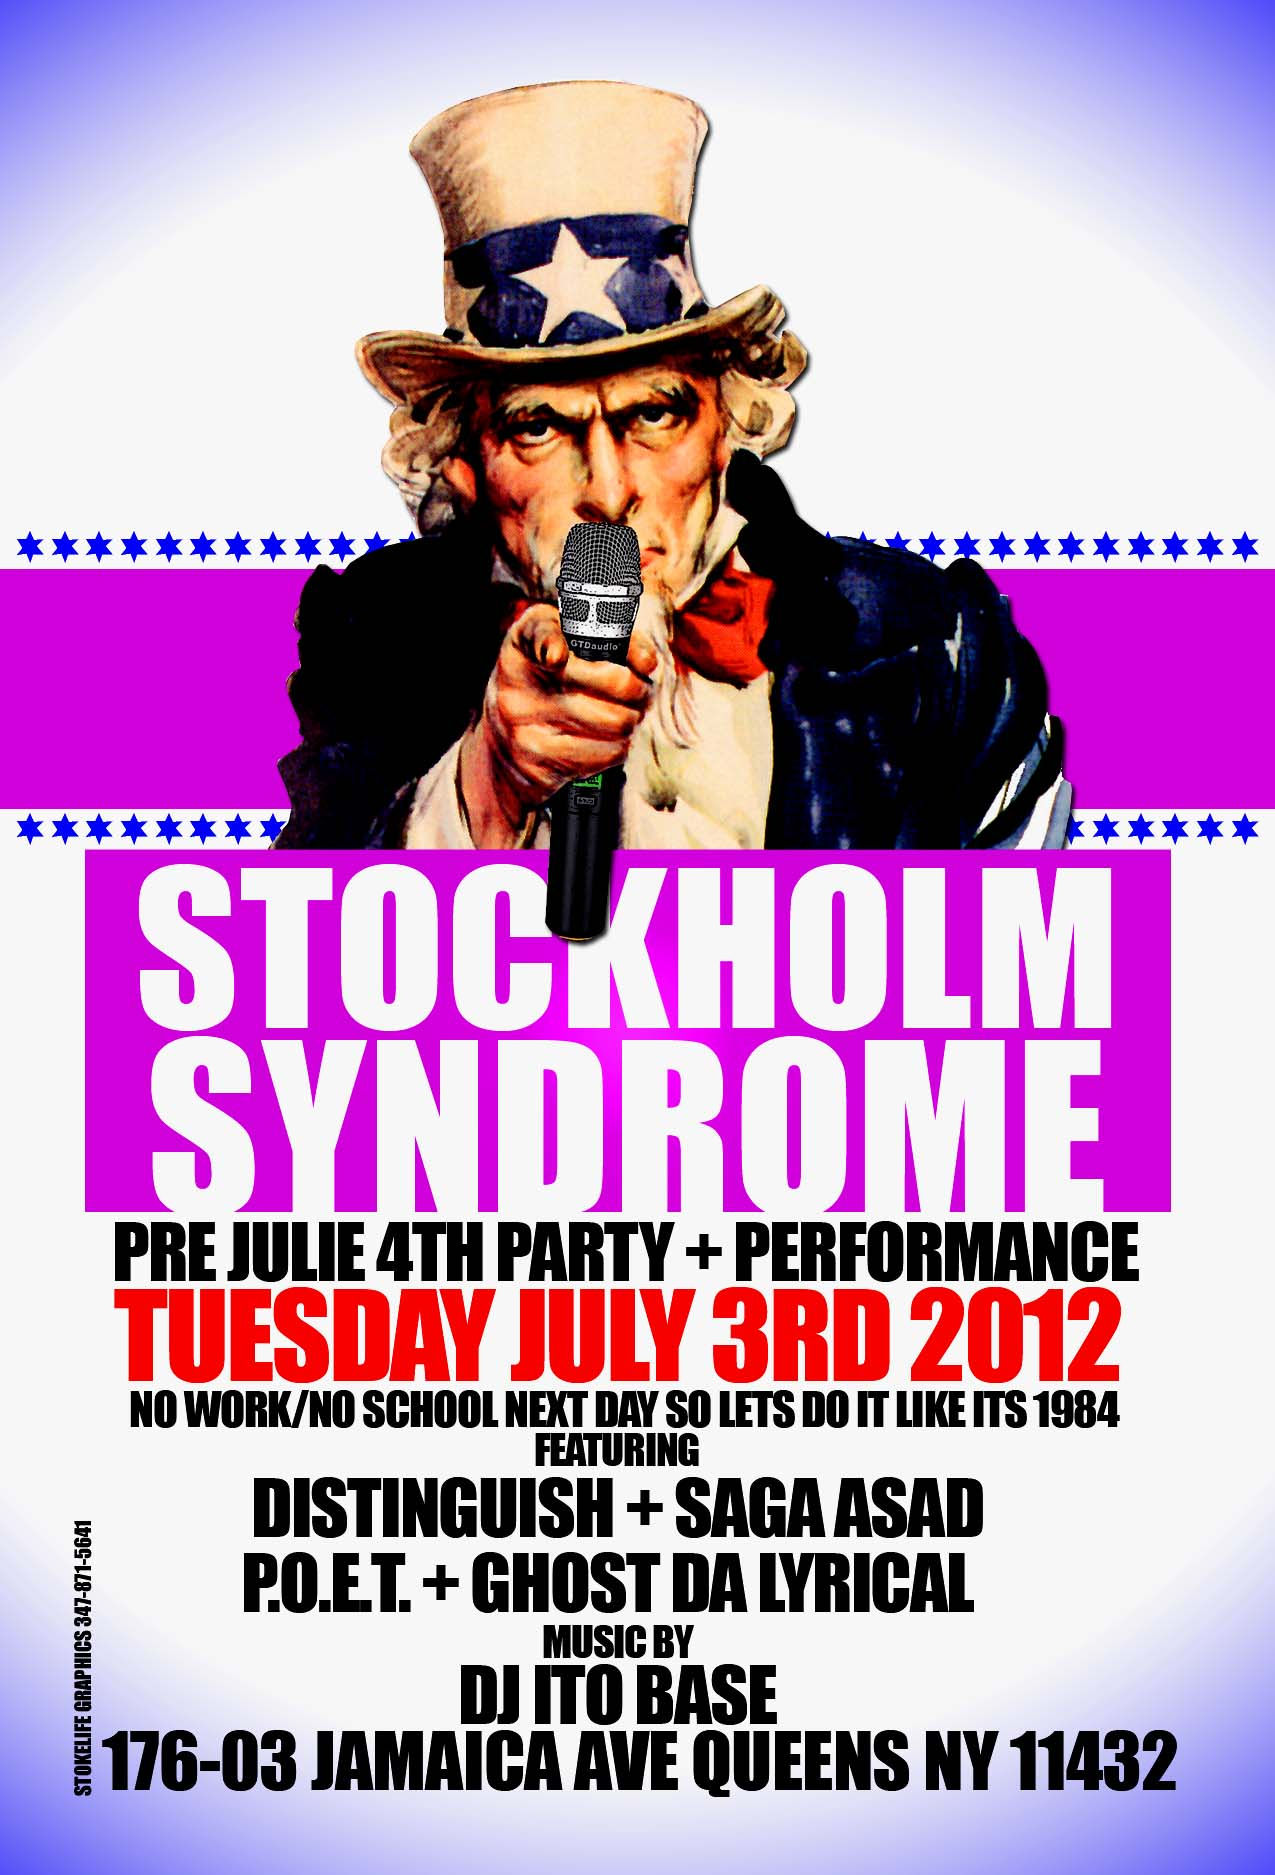 conscious ny hip hop party and show stockholm syndrome july 3rd 2012